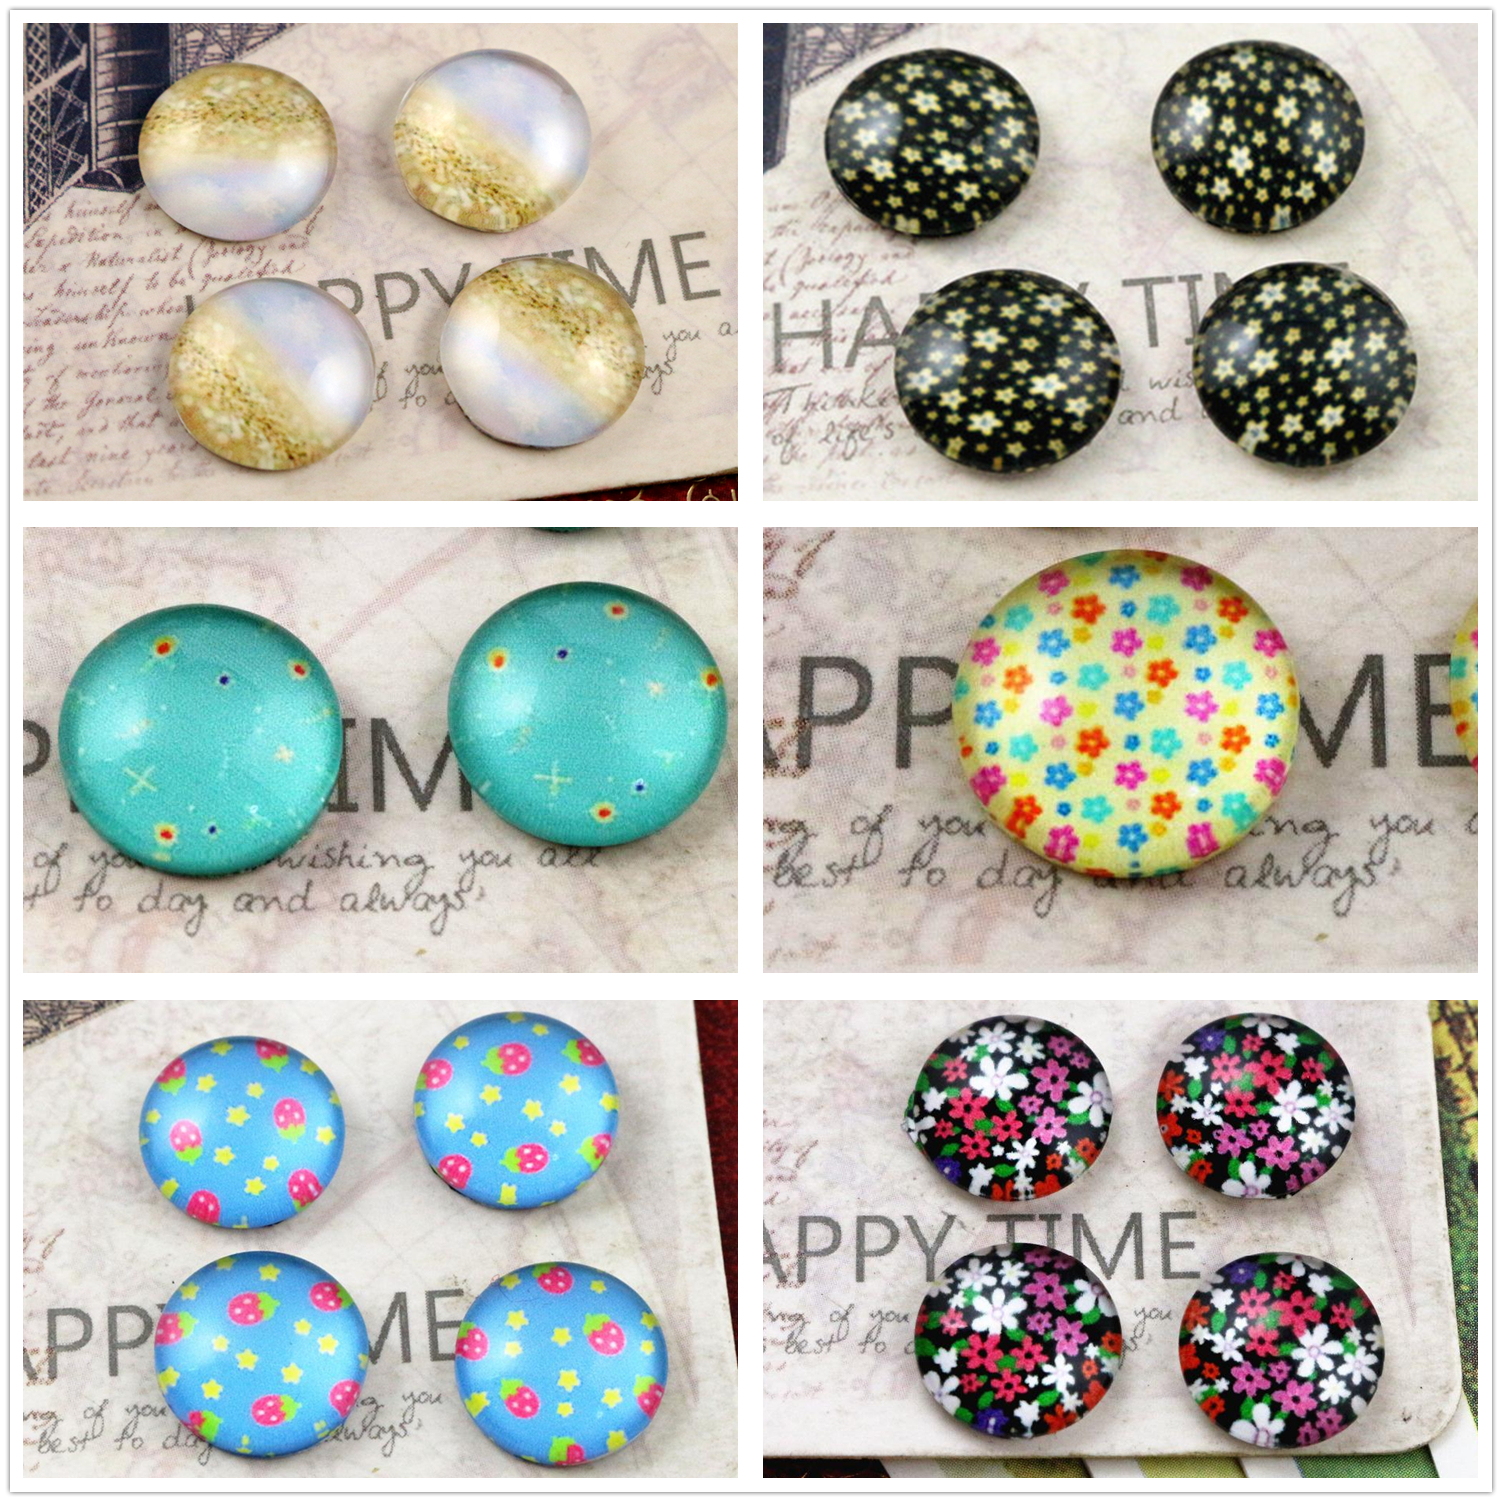 Hot Sale 20pcs/Lot 12mm Popular Flower Style Handmade Glass Cabochons Pattern Domed Jewelry Accessories Supplies